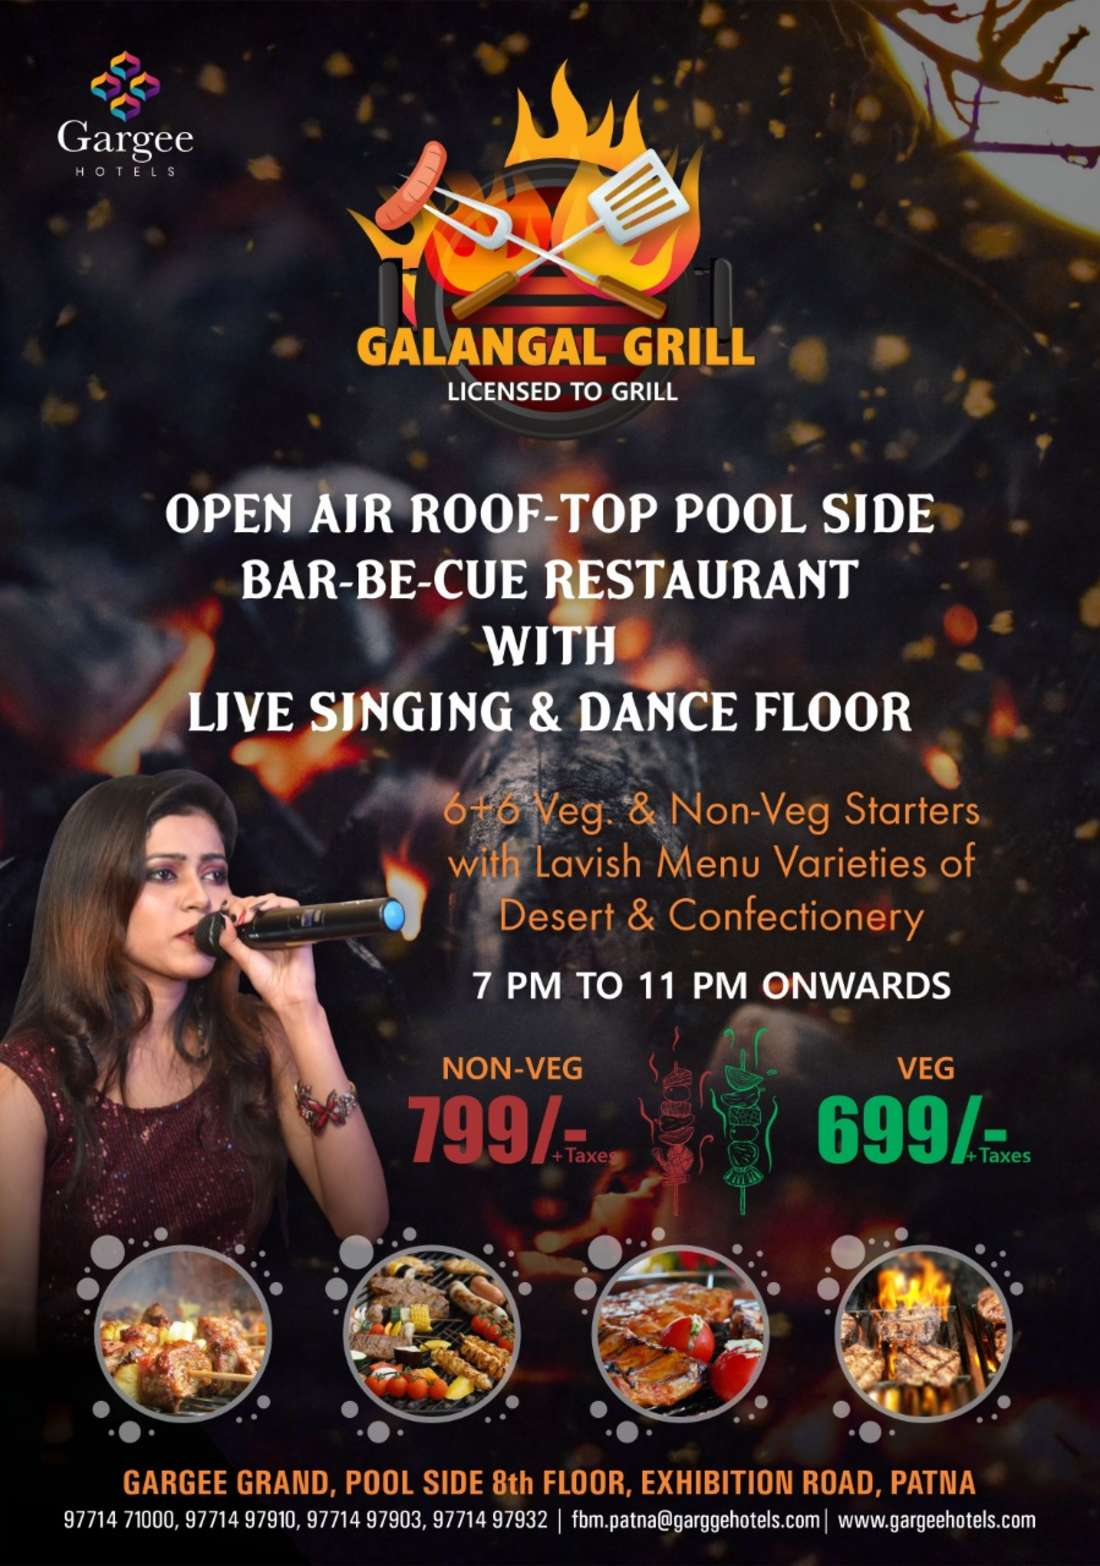 Galangal Grill